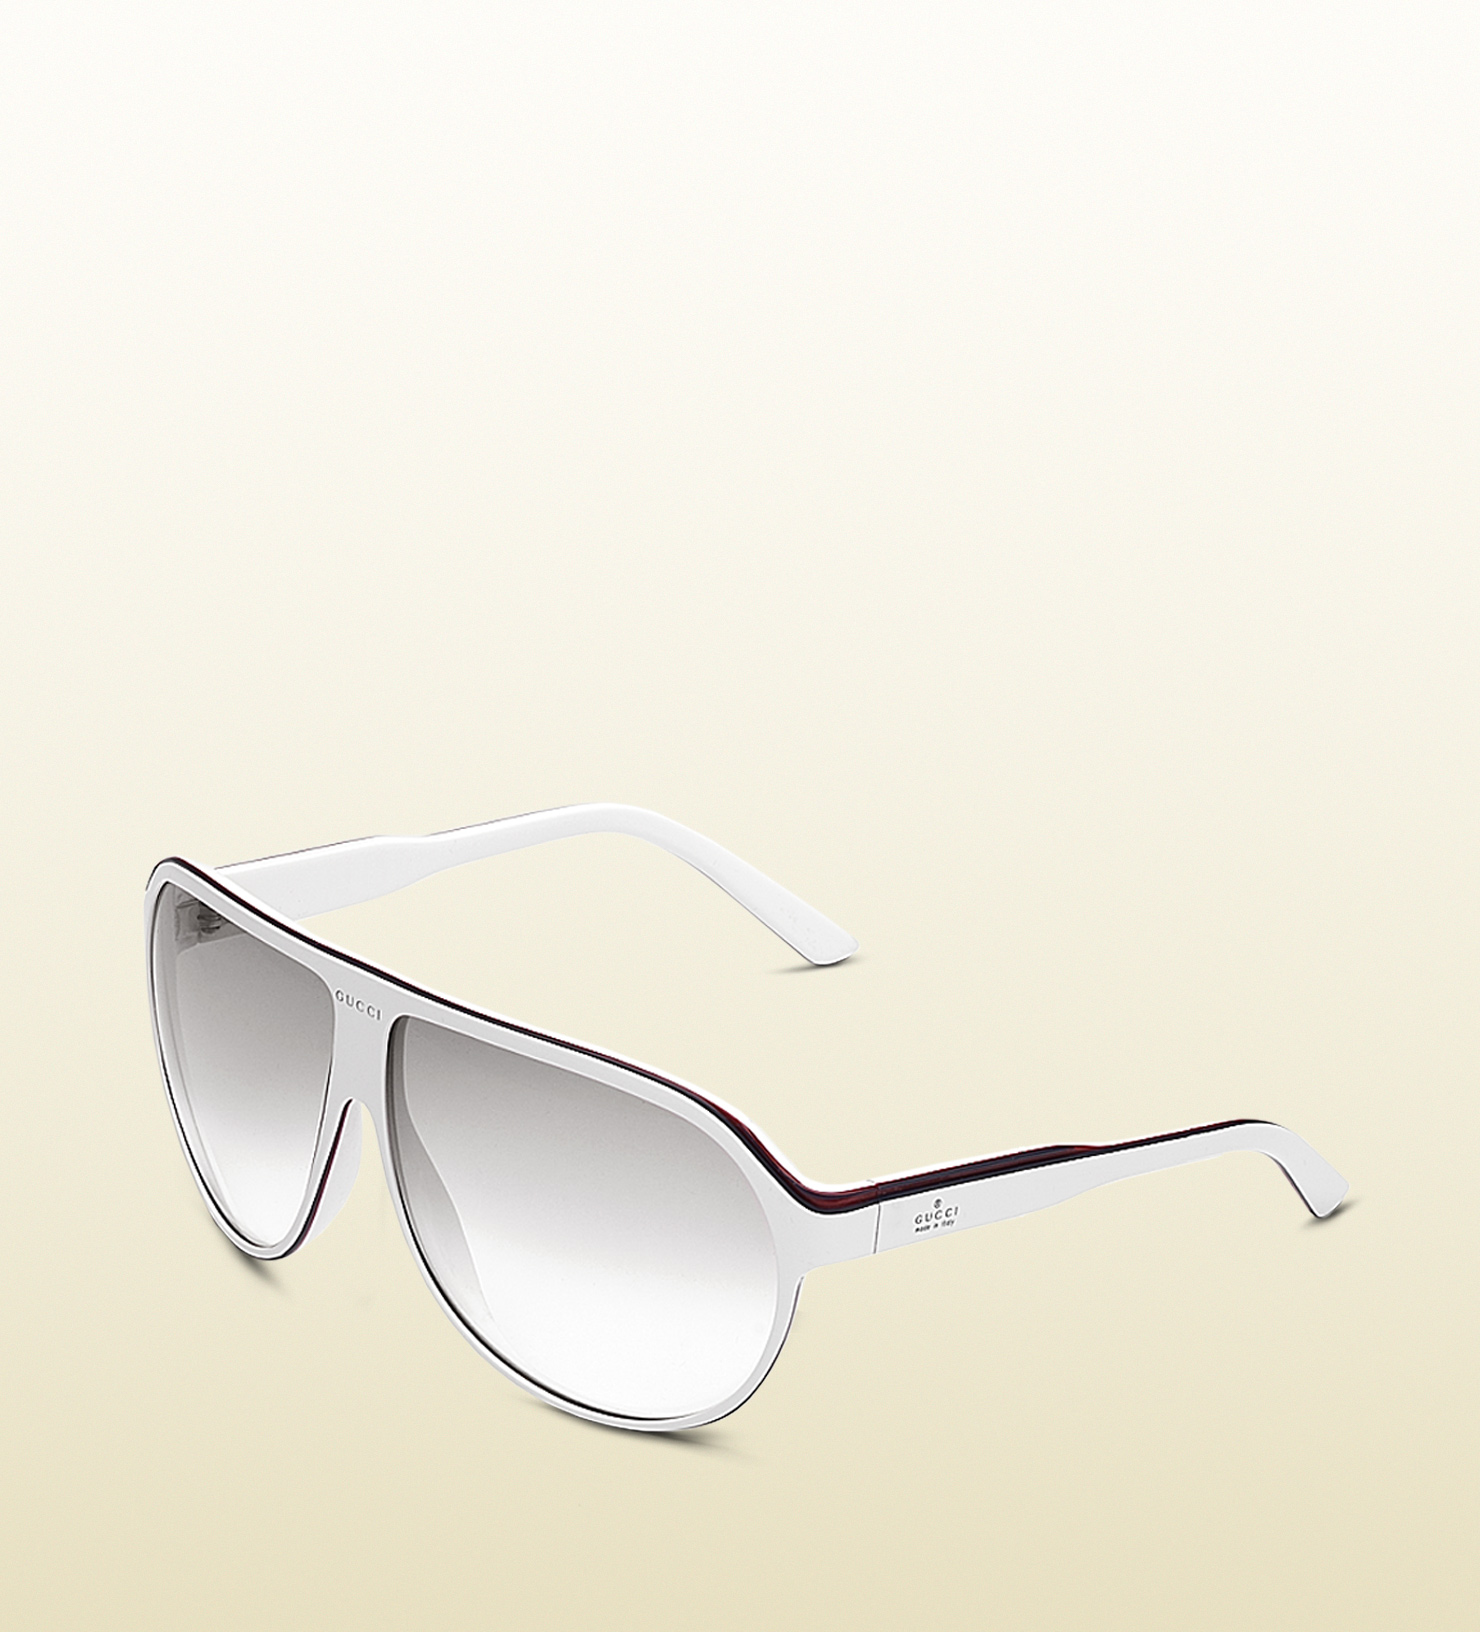 6e730254c91 Lyst - Gucci Large Aviator Frame Sunglasses with Gucci Trademark ...